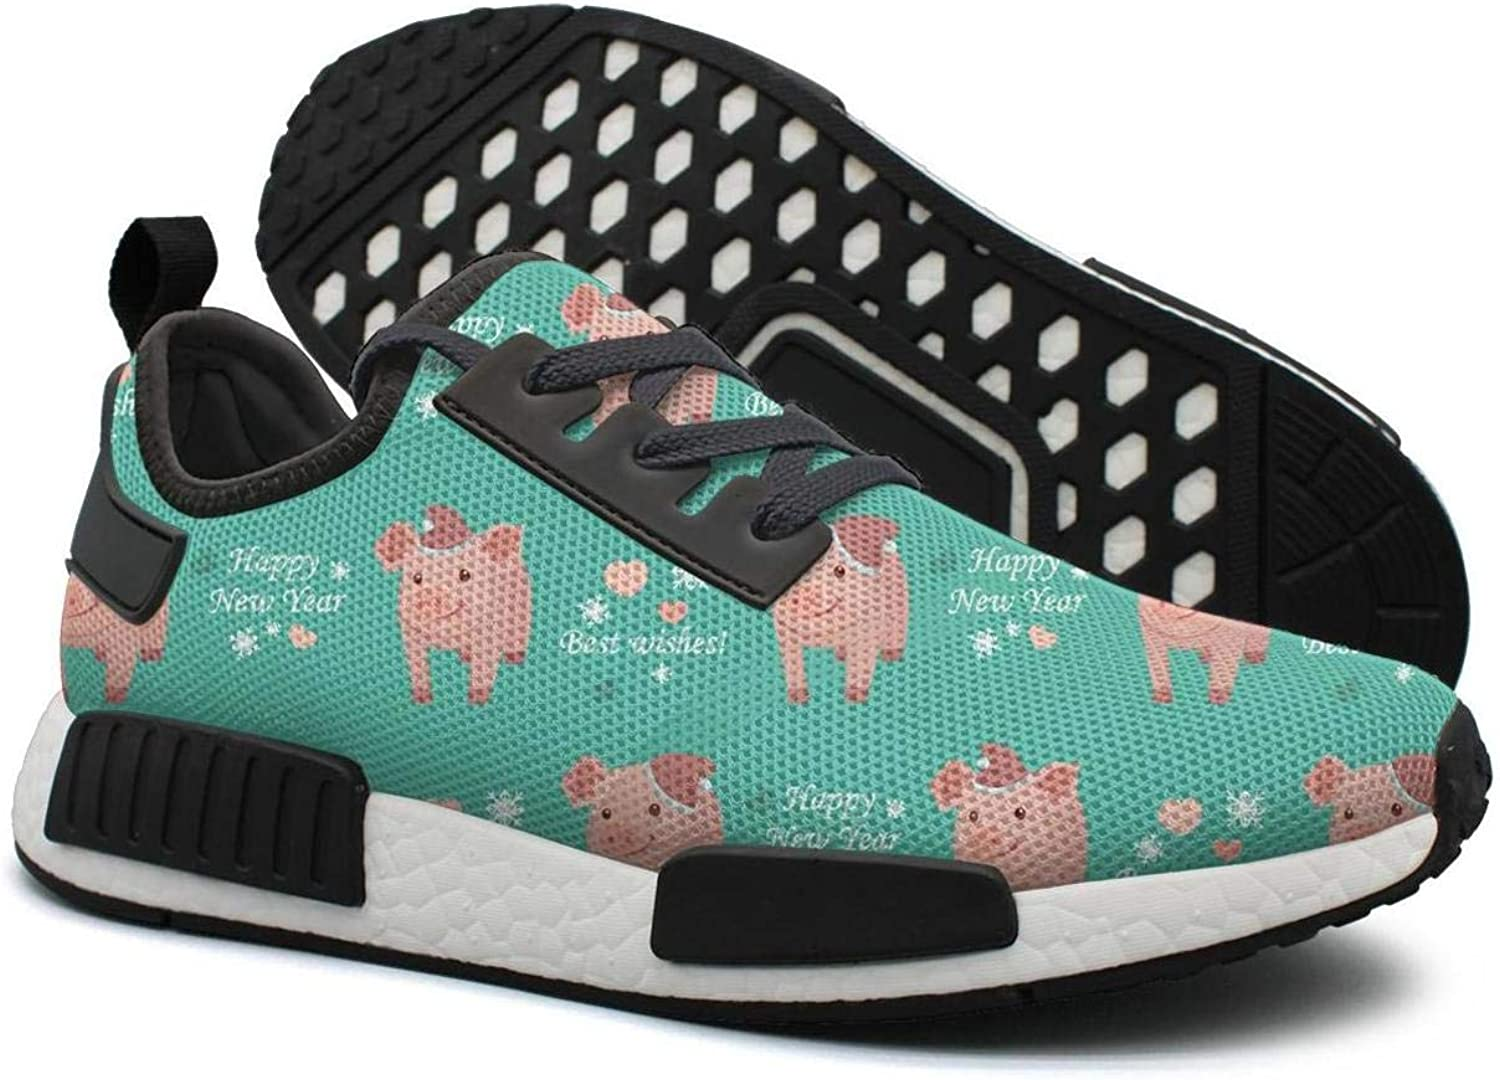 Pduiqo Happy New Year 2019 Pig Poster Women's Jogger Lightweight Sneakers shoes Gym Outdoor Running shoes